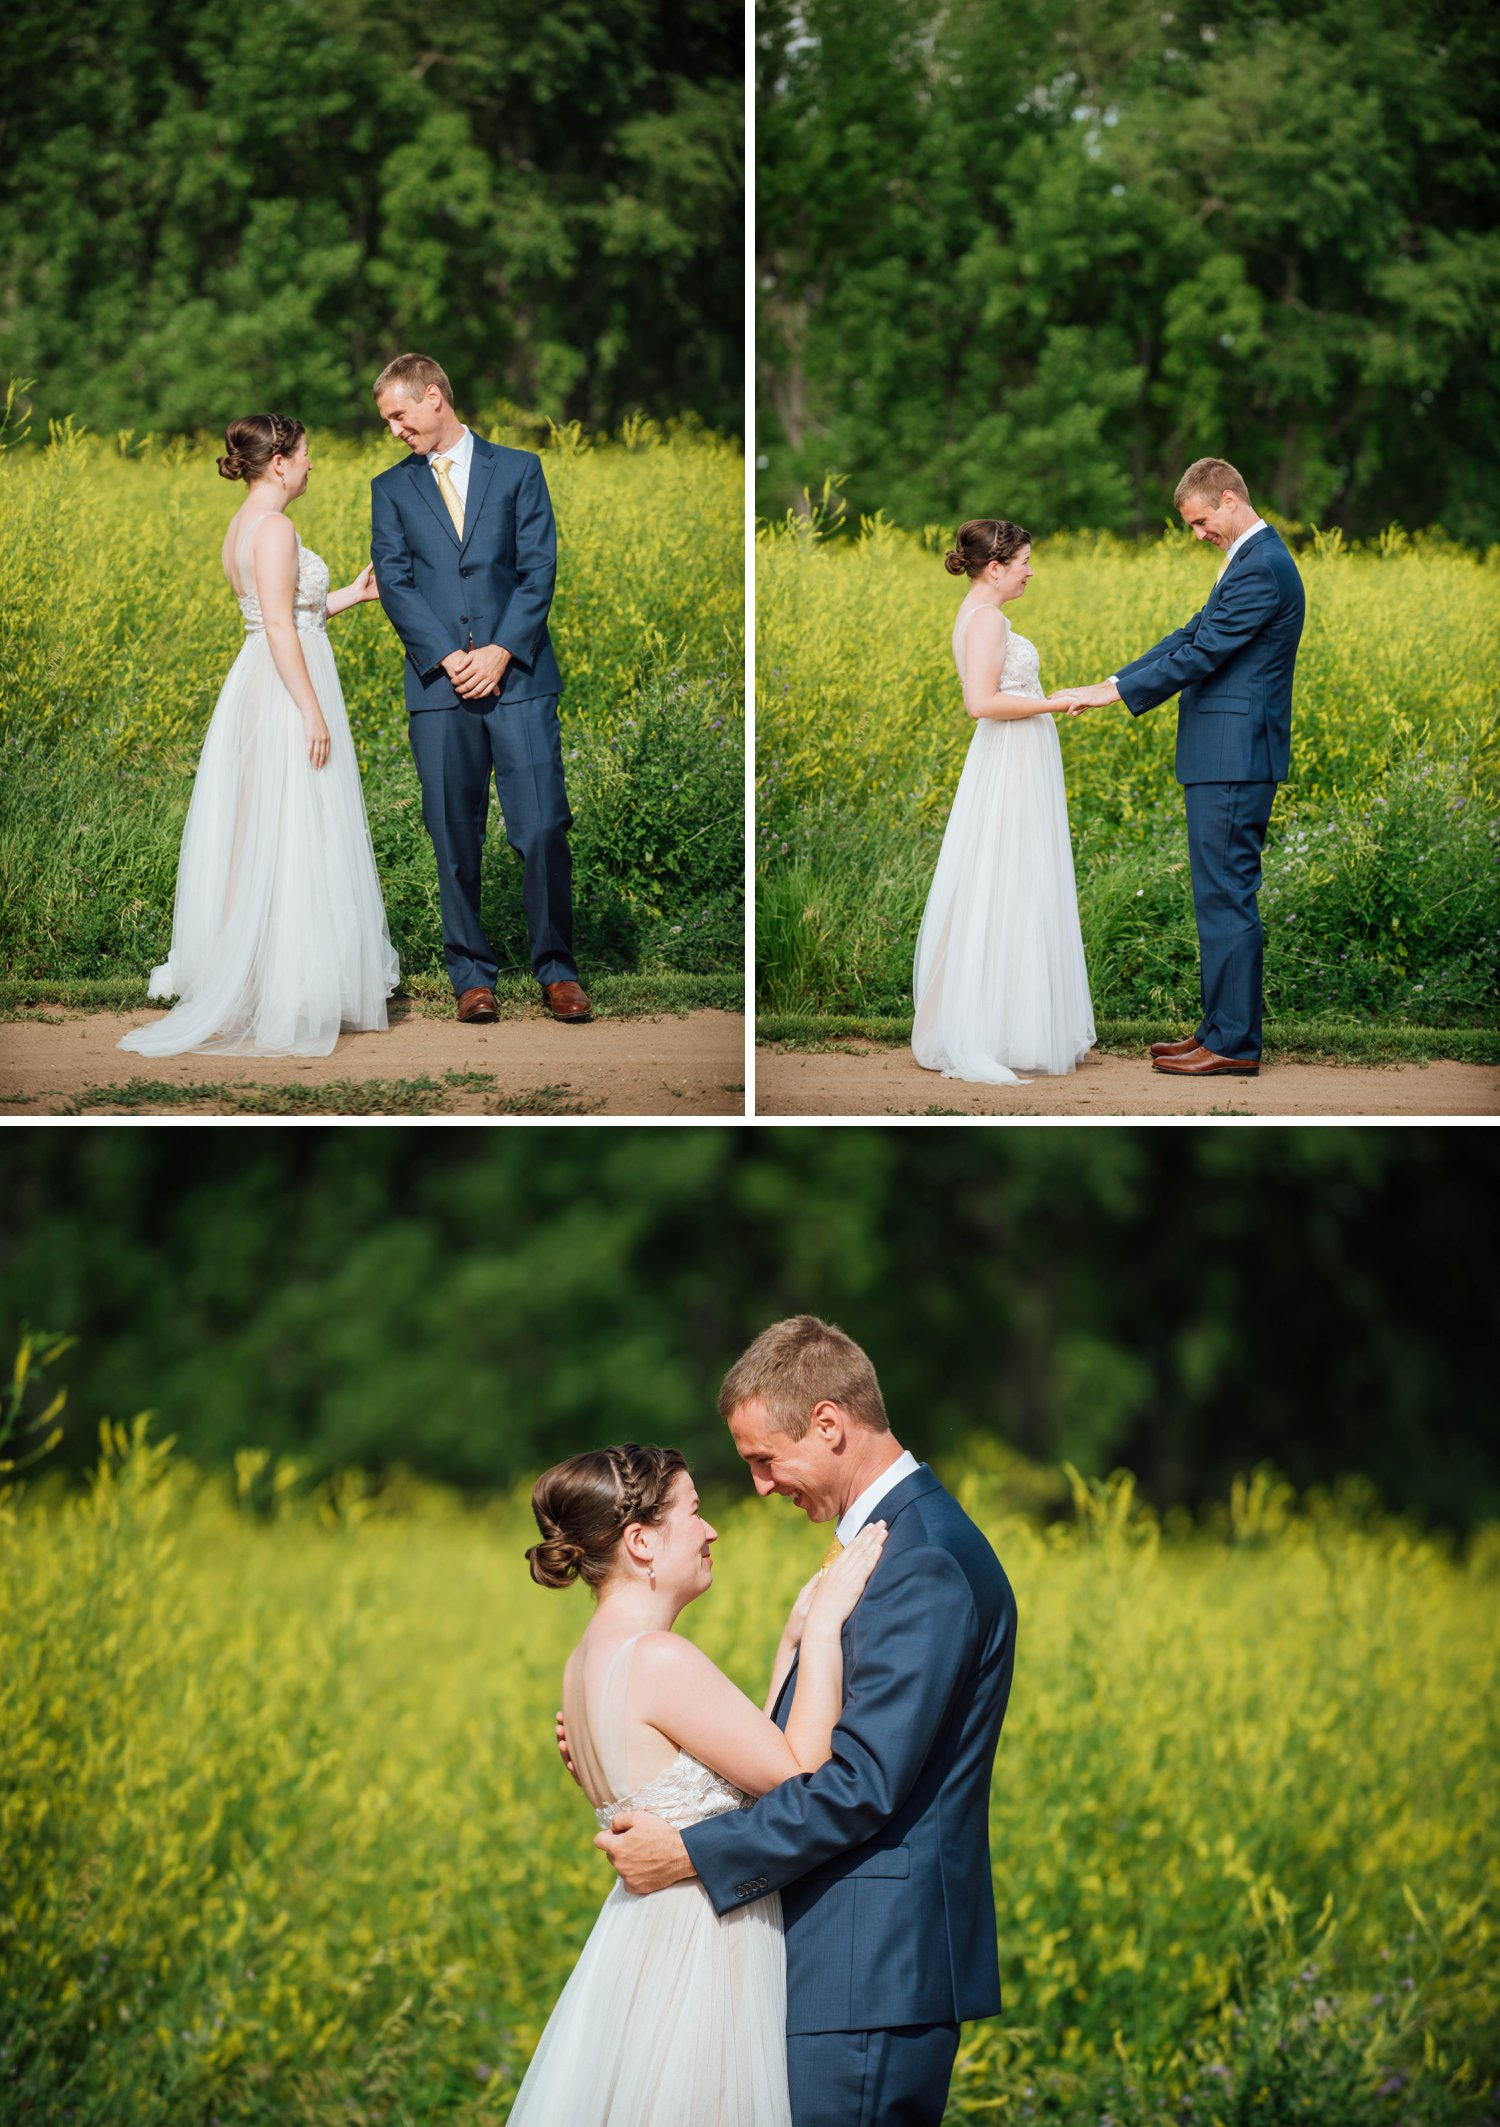 This first look is so cute! And I love the tall grass behind - it adds the perfect backdrop to such a sweet moment.Photo by Maddie Mae Photography